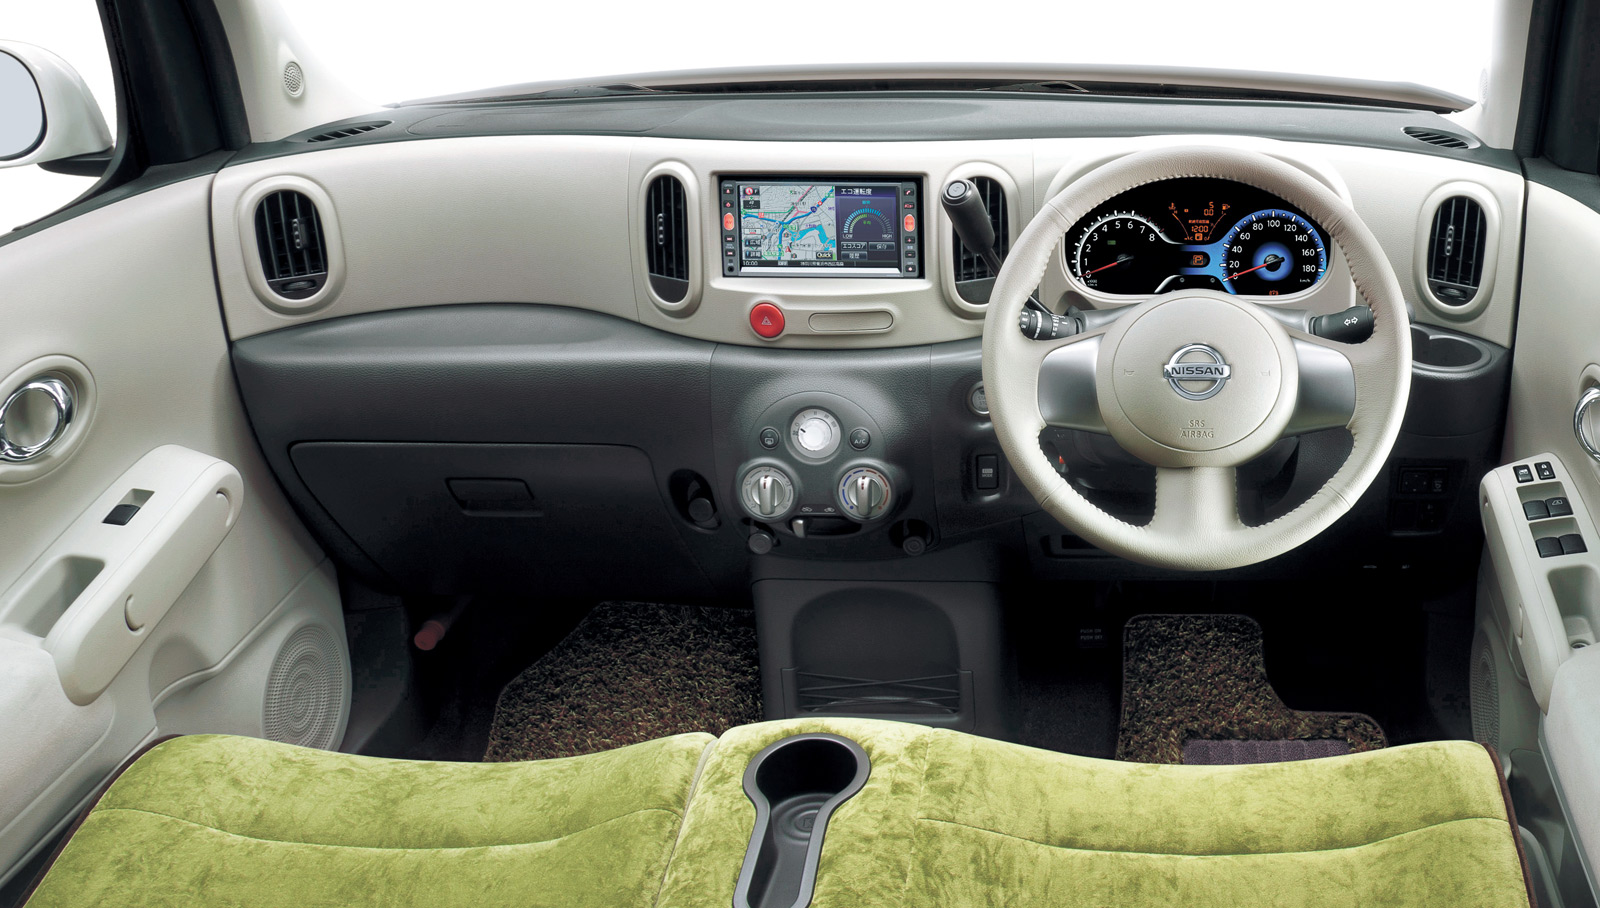 Nissan Cube Z Green Selection Interior on Nissan Cube Interior